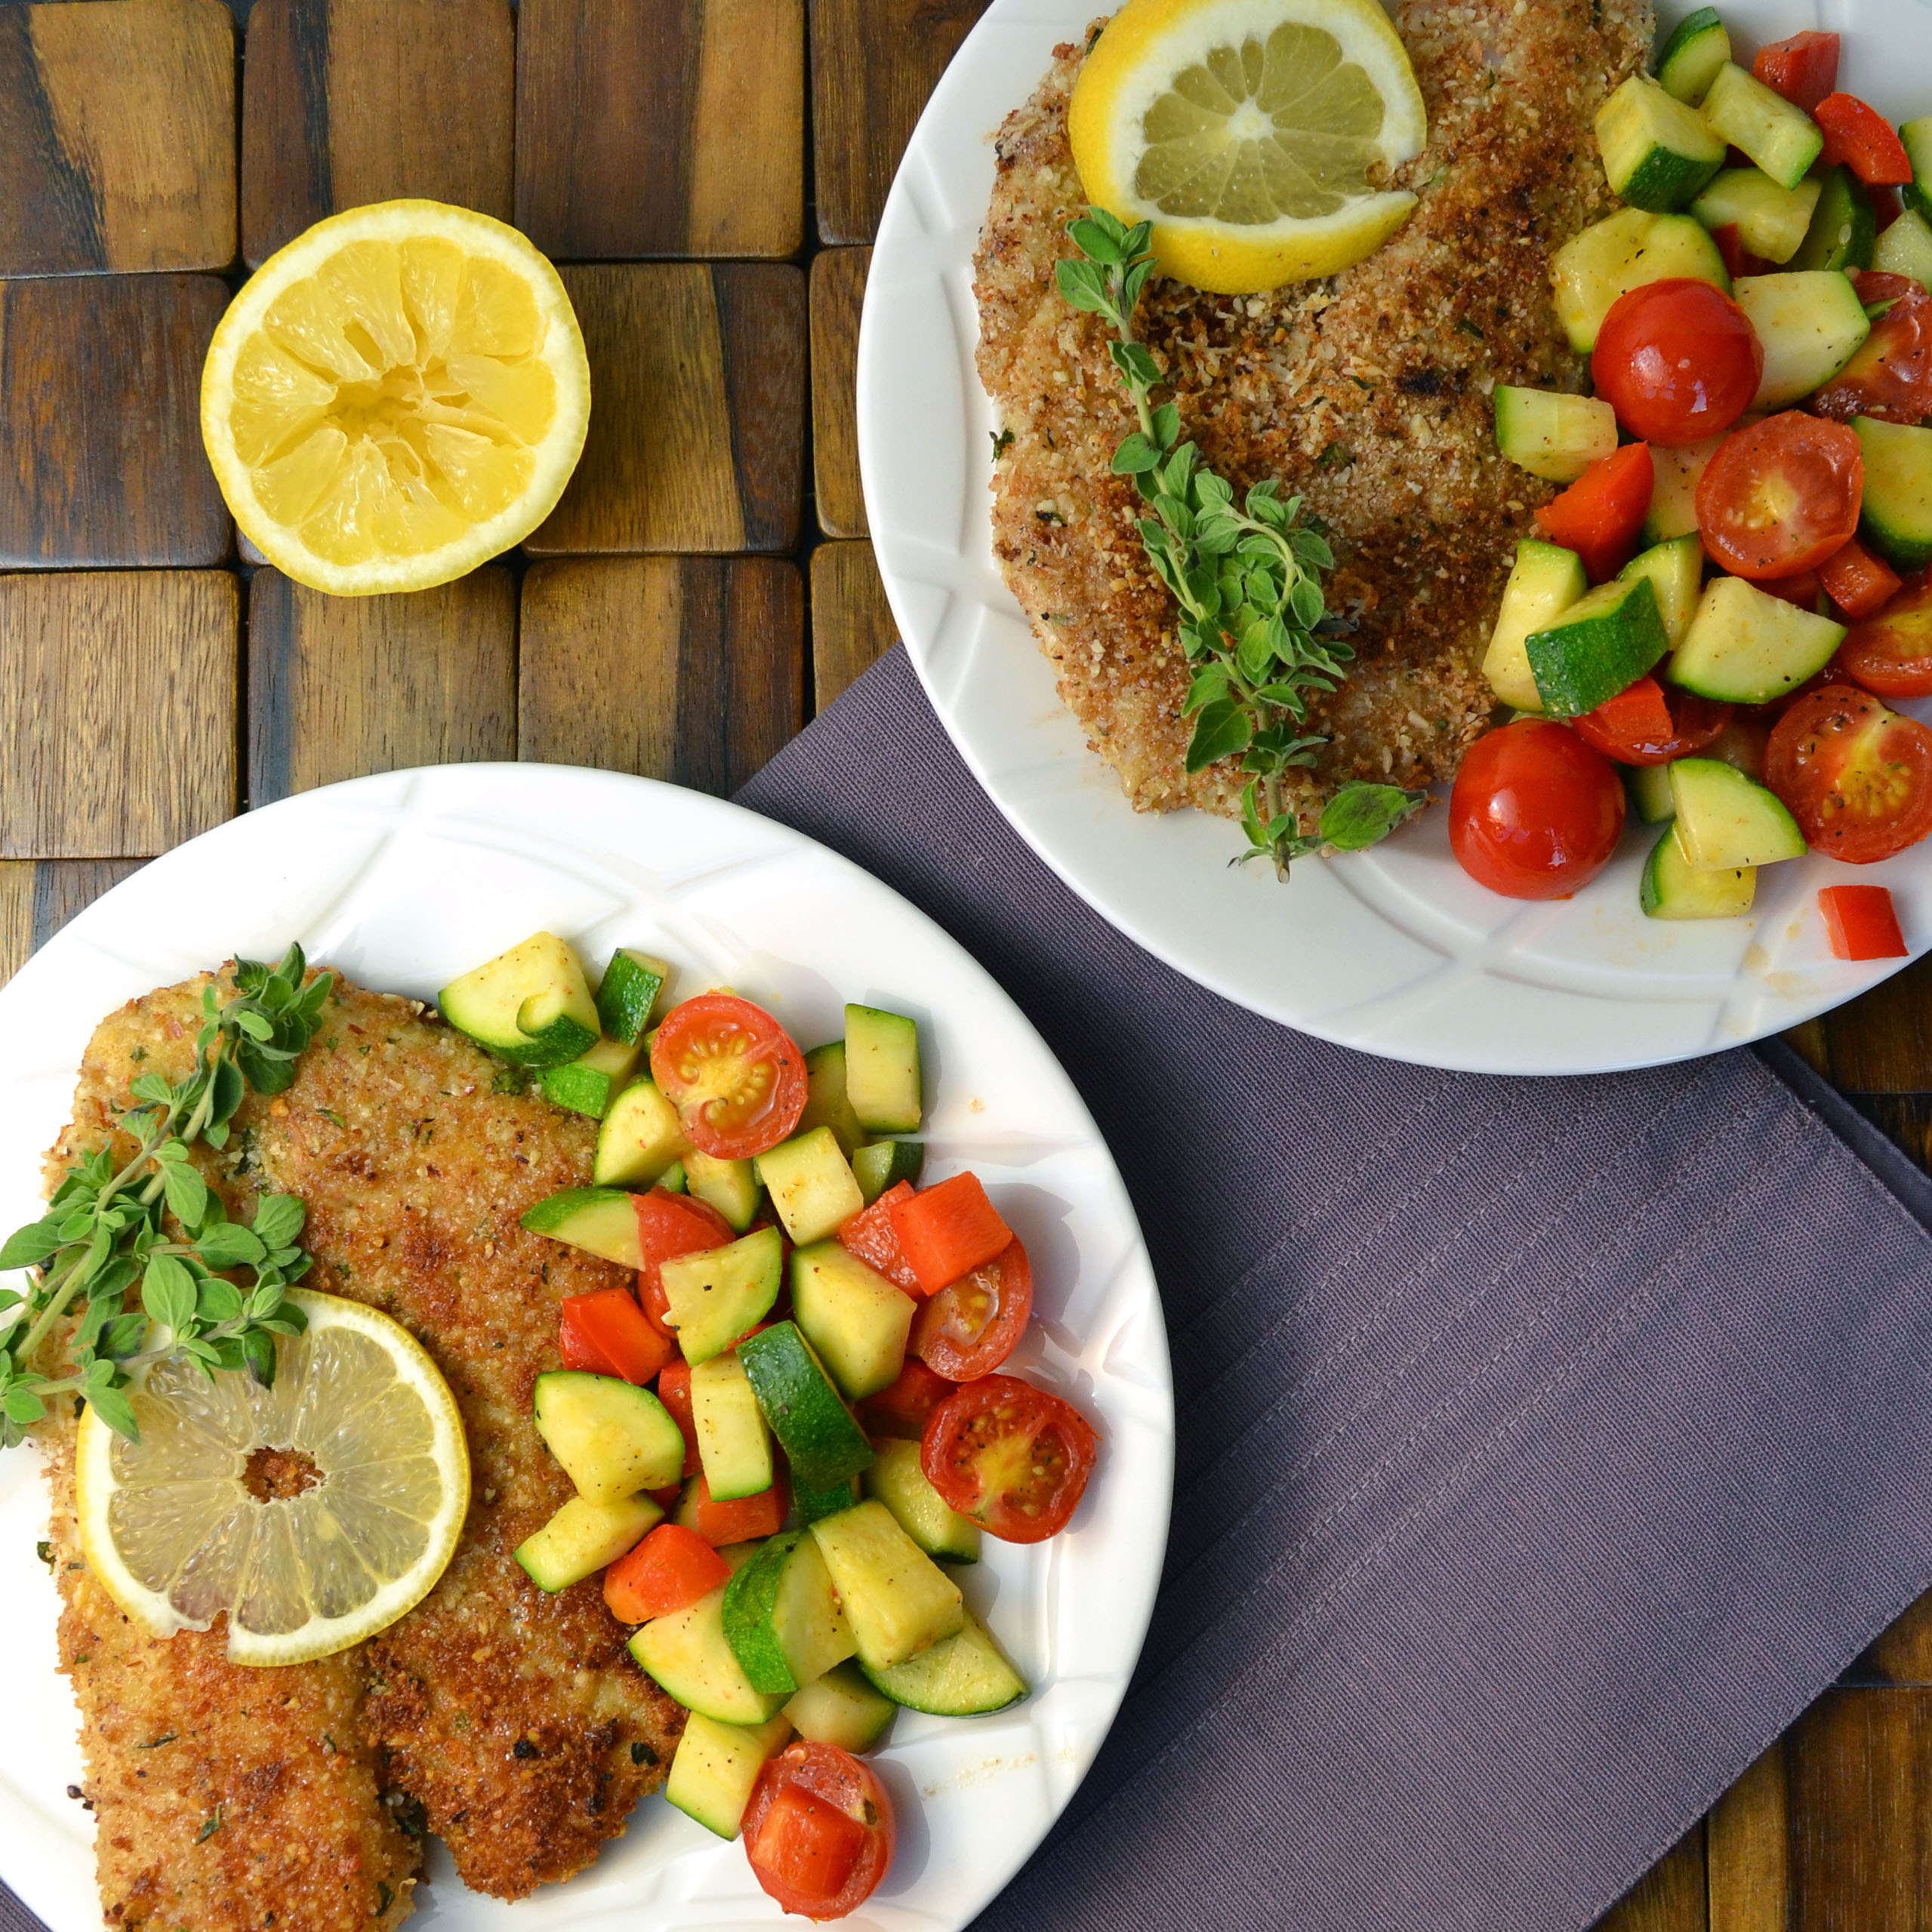 Almond crusted tilapia with veggies windykitchen for What sides go with fish